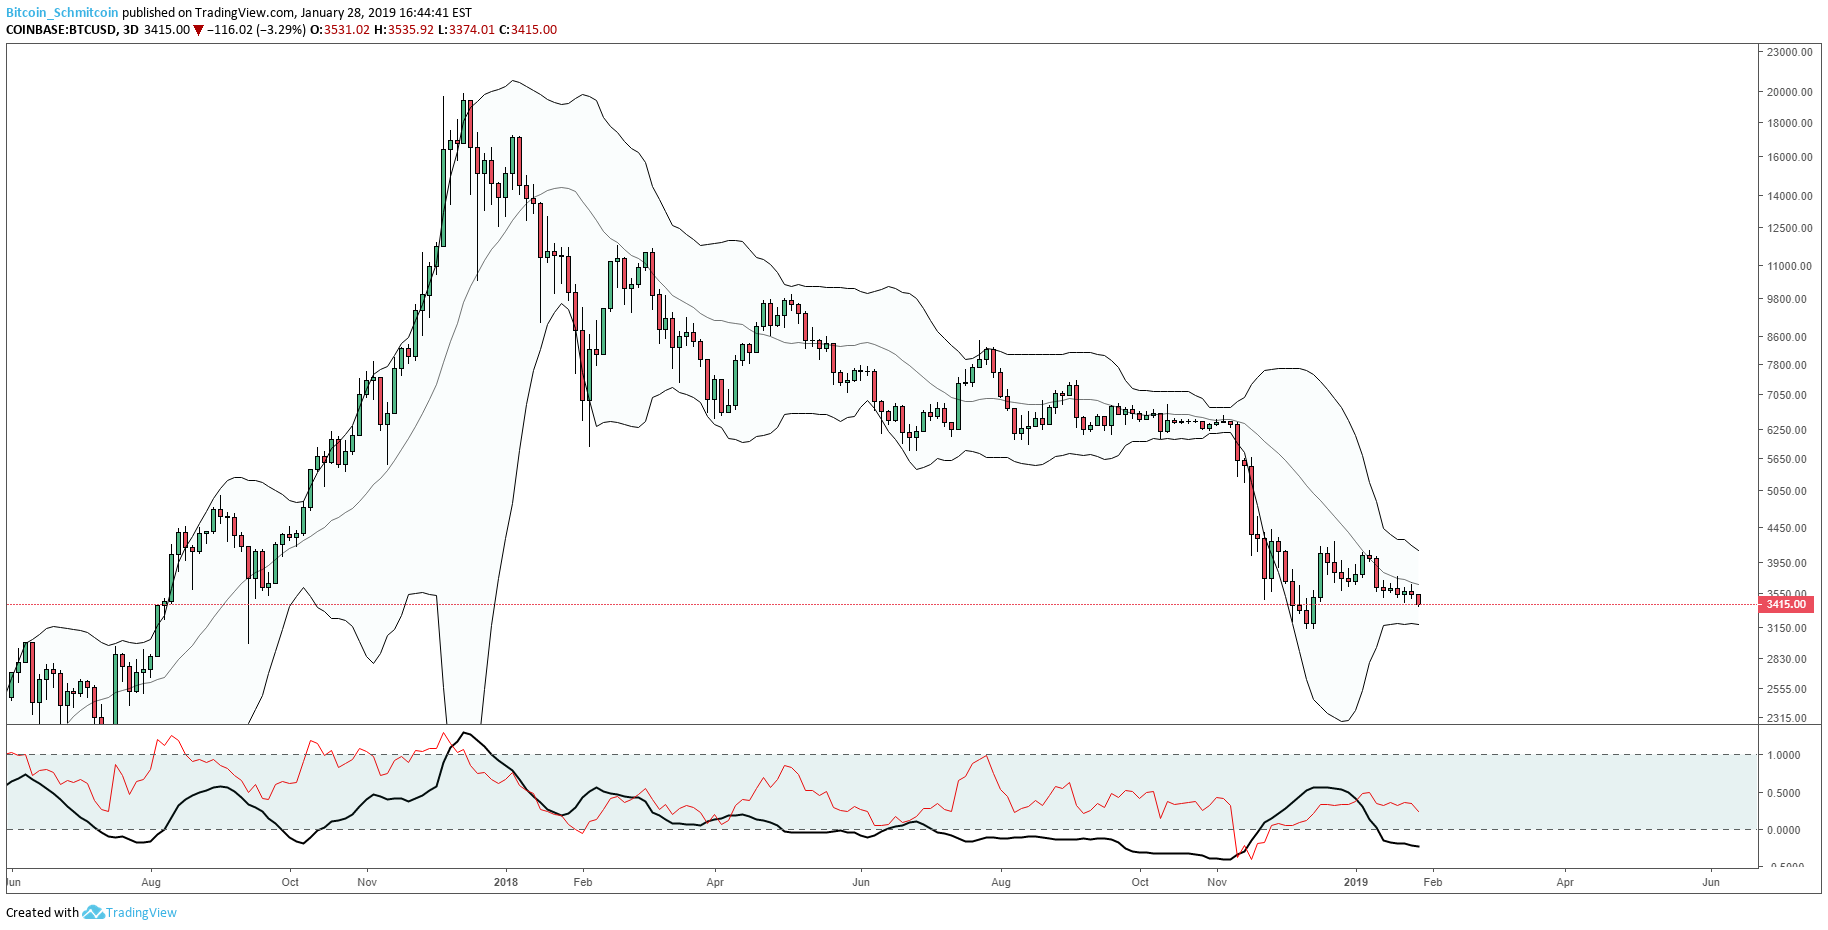 Bitcoin Price Analysis: Major Support Broken on Expanding Volume and Spread